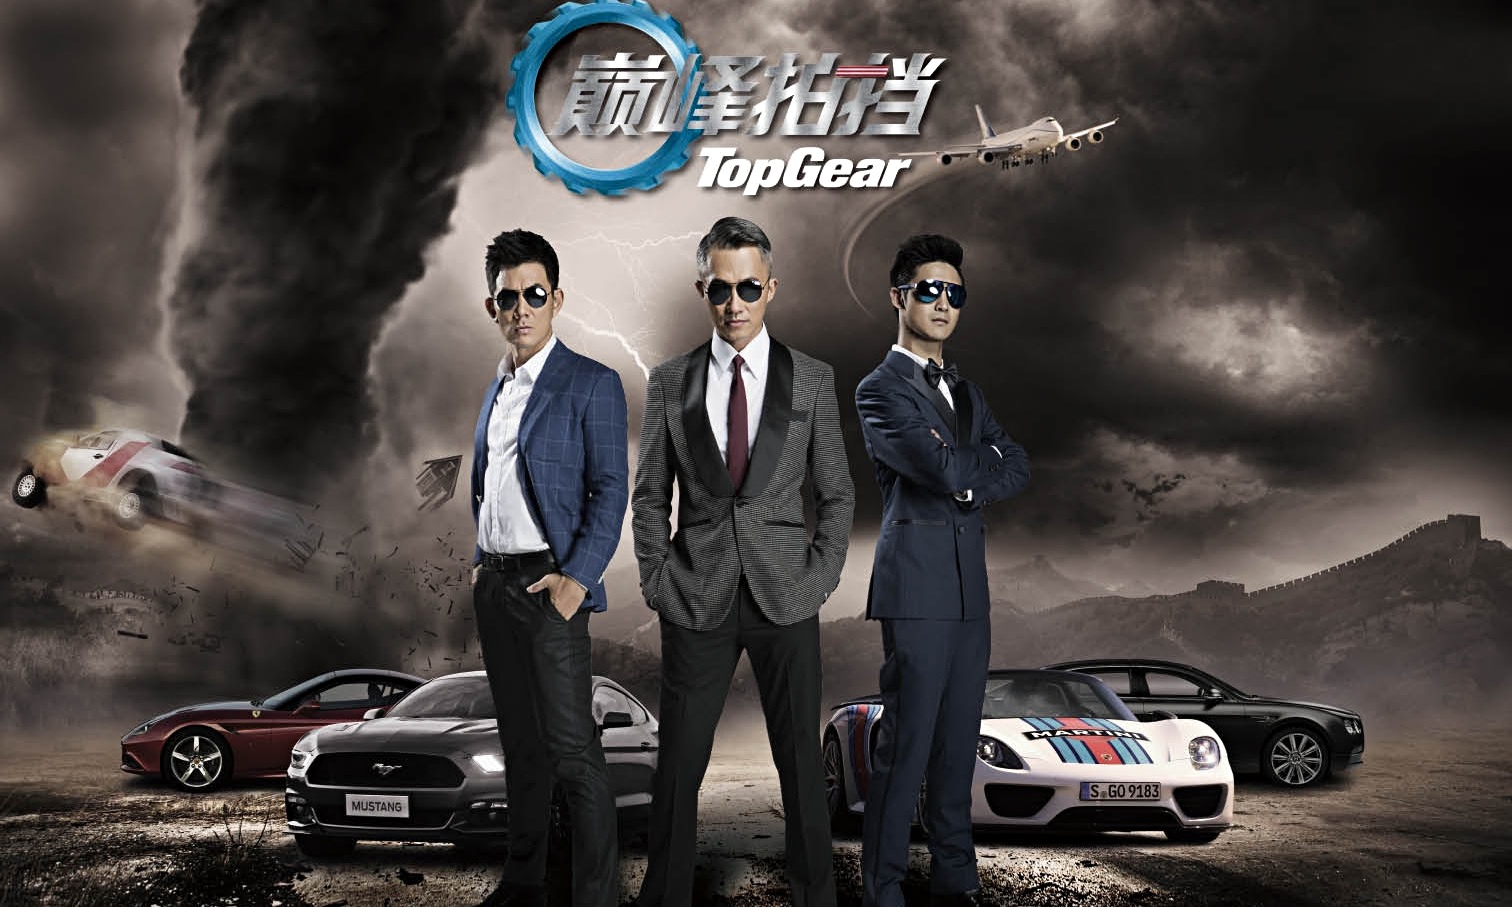 bbc s top gear launches local version in china media the guardian. Black Bedroom Furniture Sets. Home Design Ideas